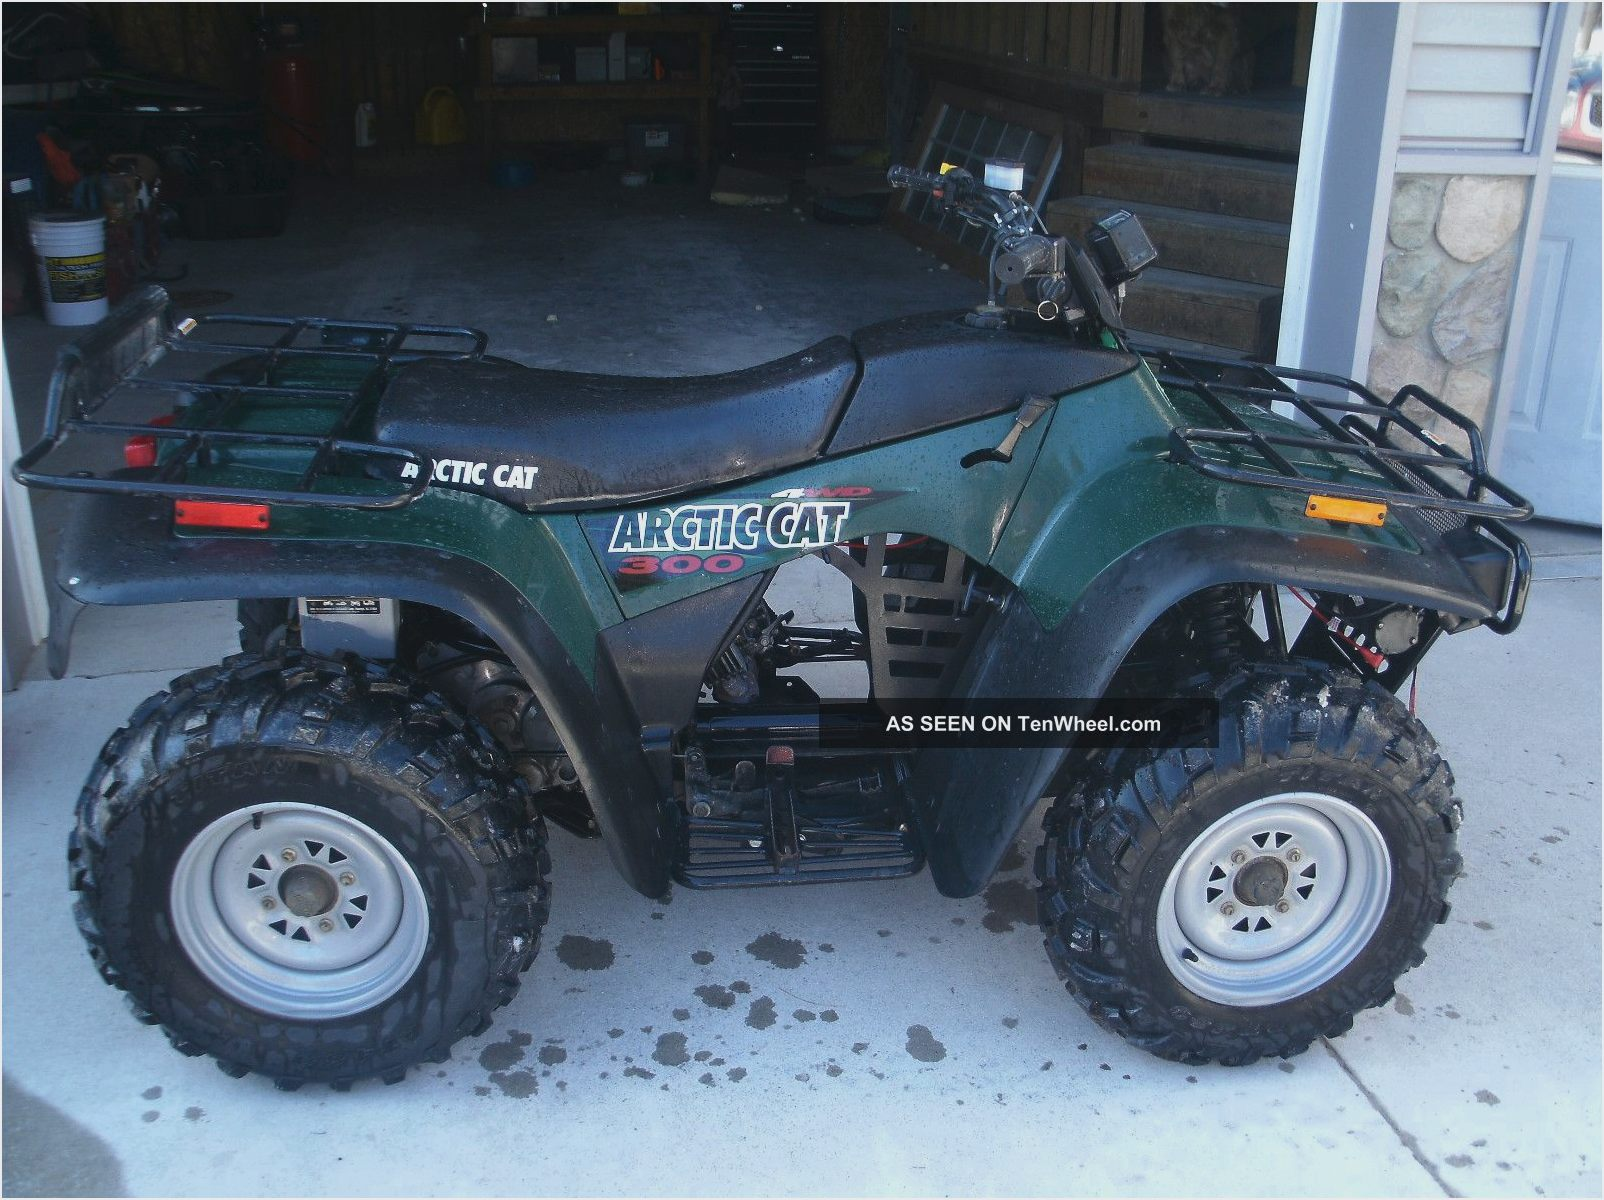 Wiring Diagram With Schematics For A 1998 400 4x4 Arctic Cat ... on